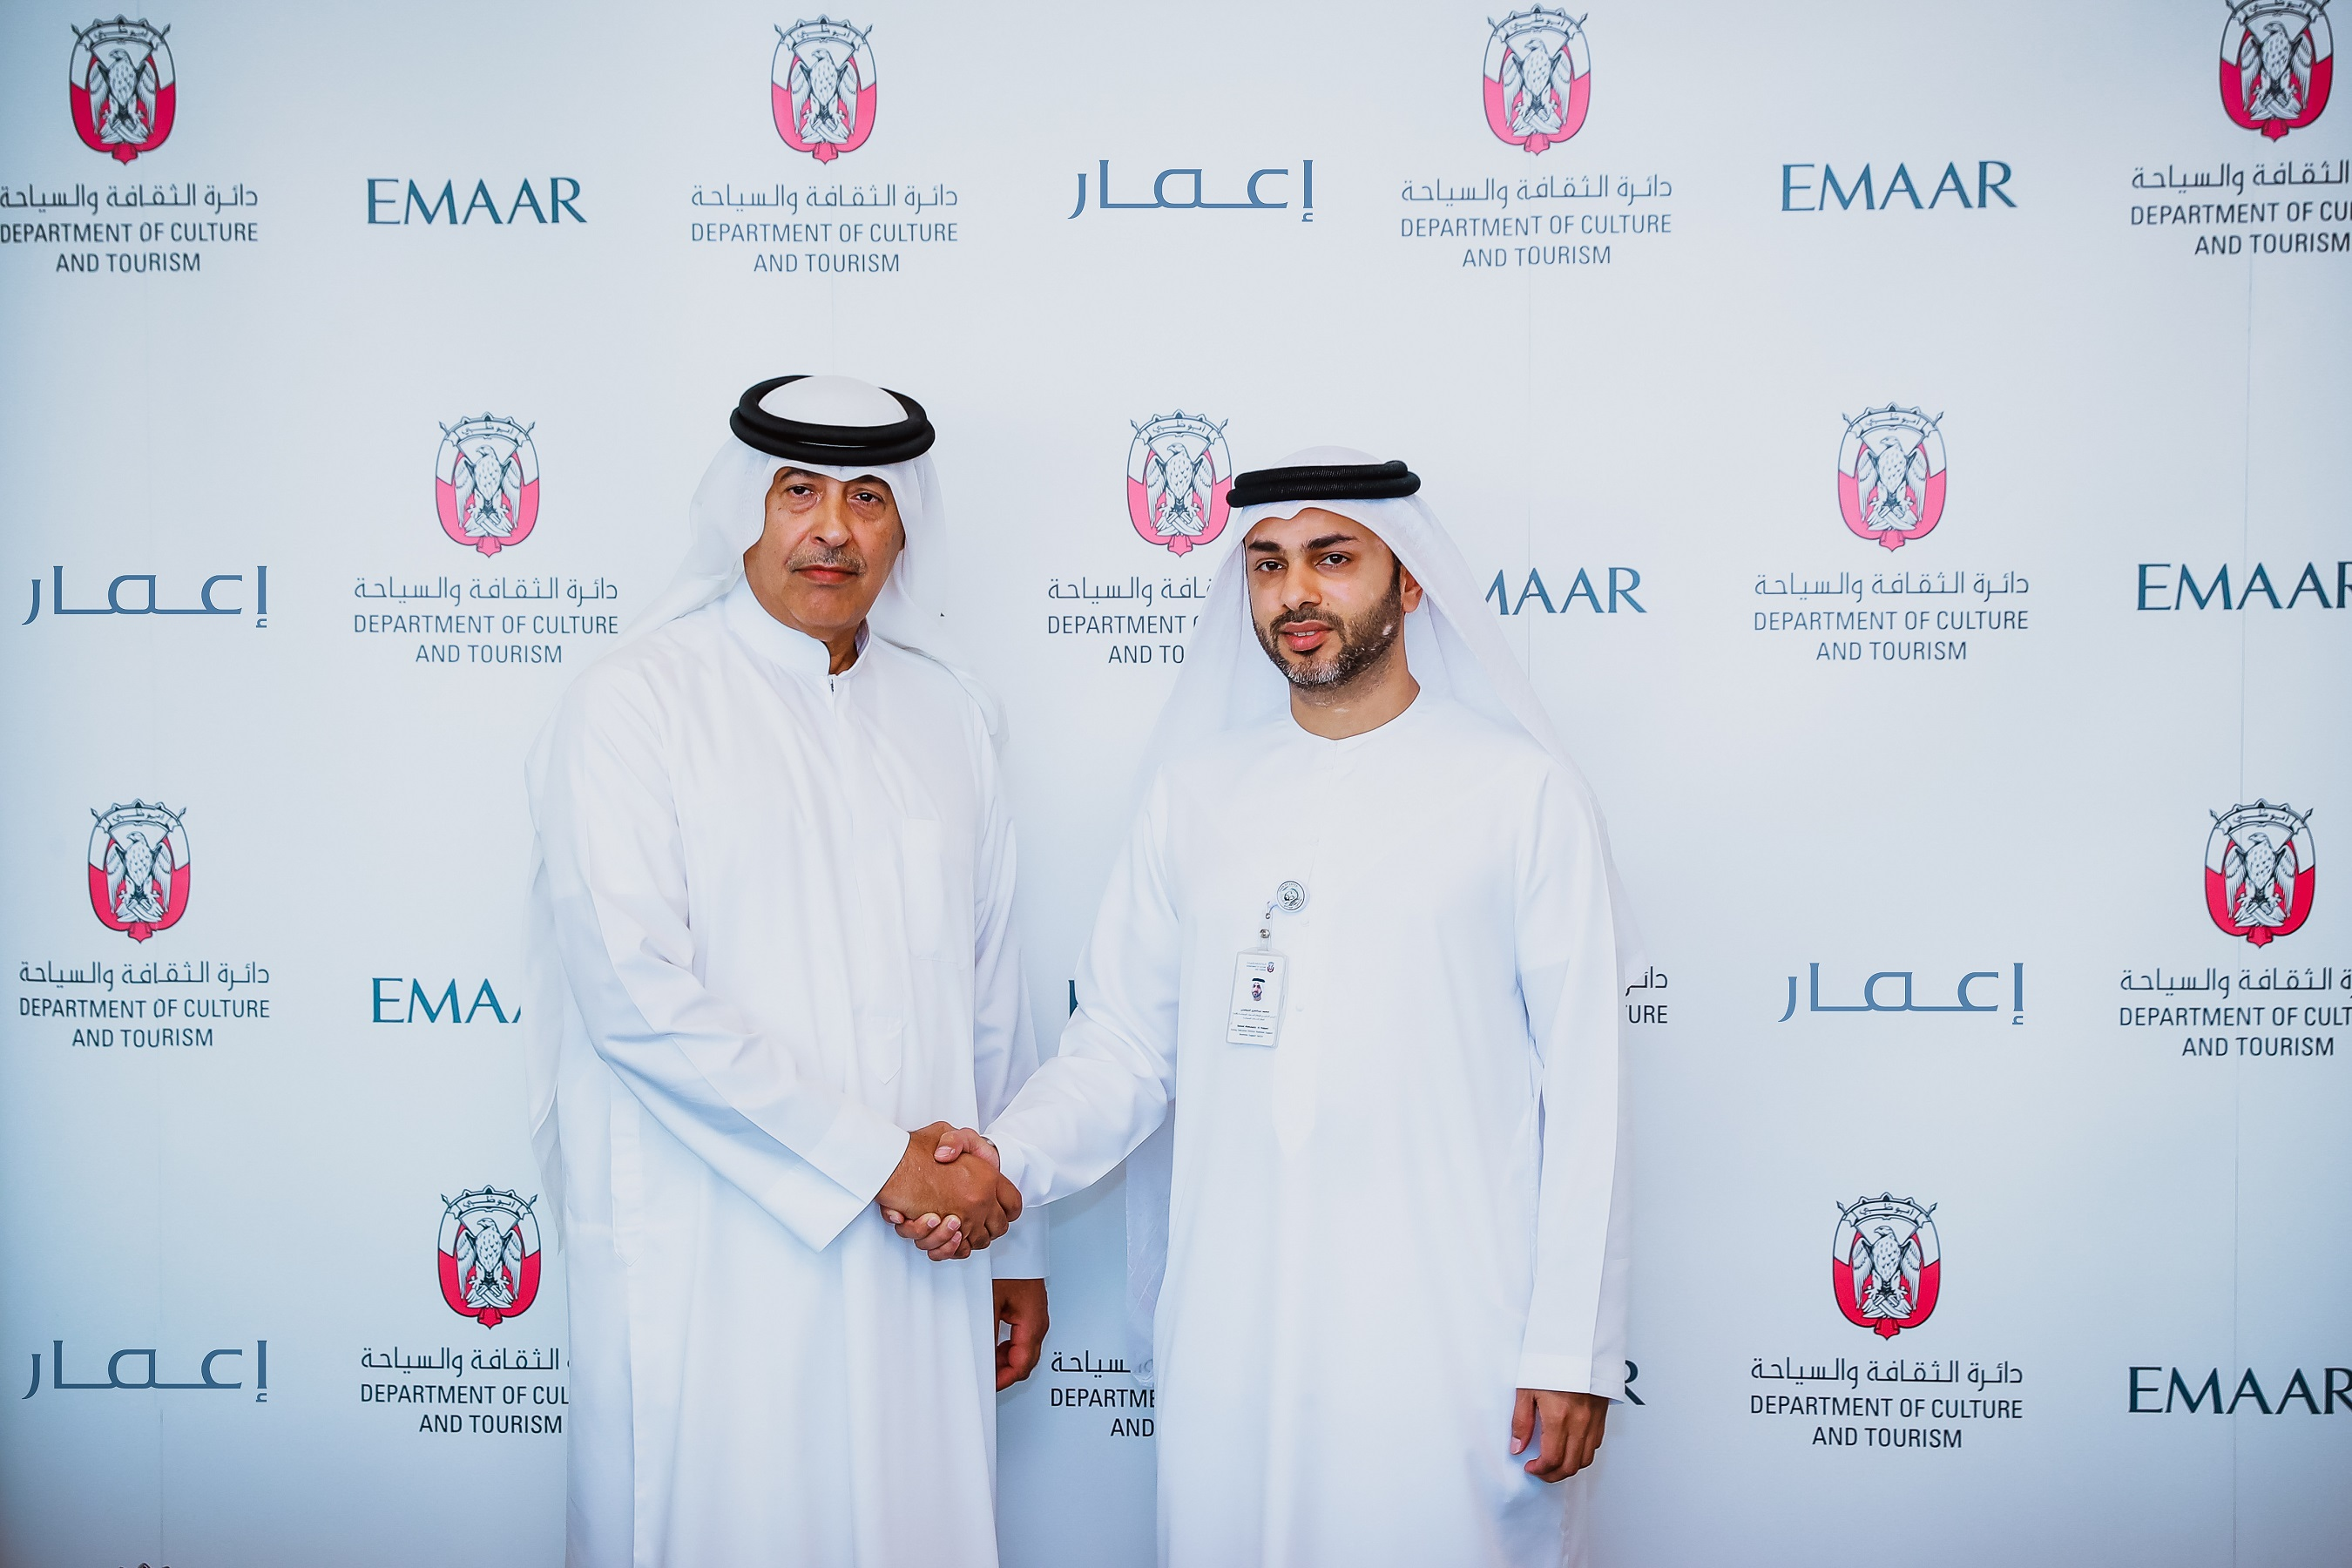 dct abu dhabi, emaar sign agreement, support local publishing industry2